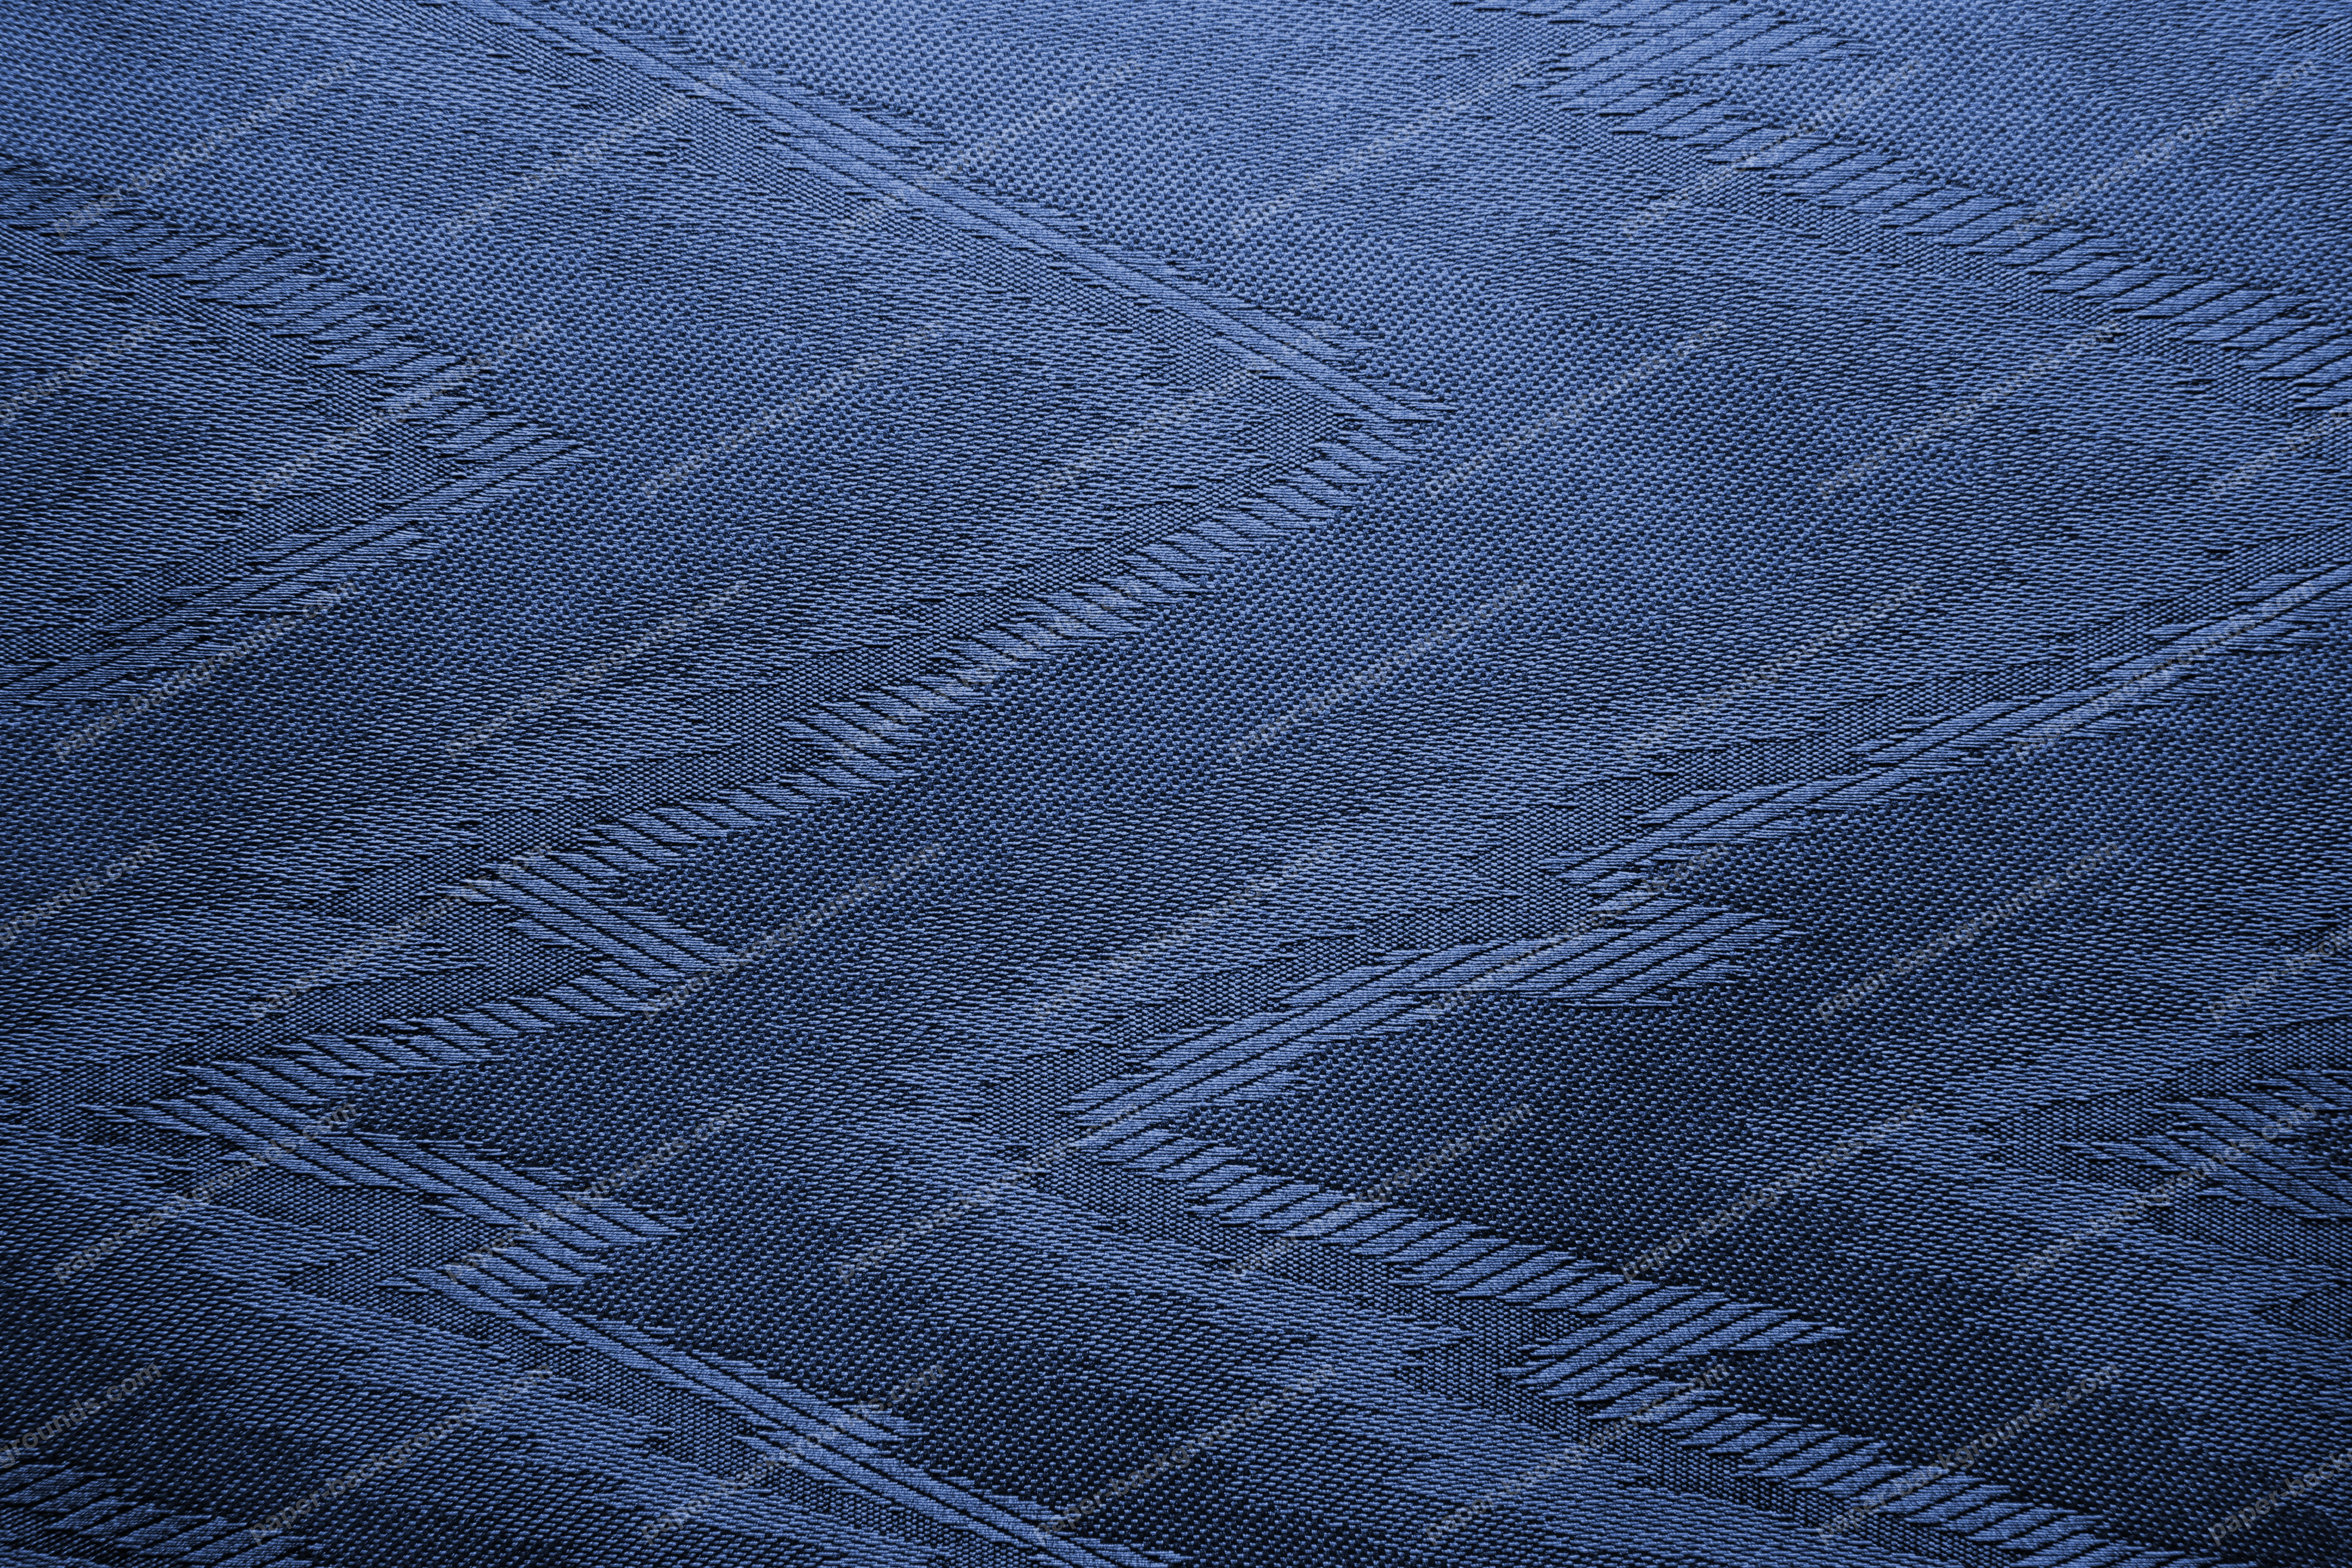 Blue Canvas With Zigzag Pattern Paper Backgrounds 5468x3646